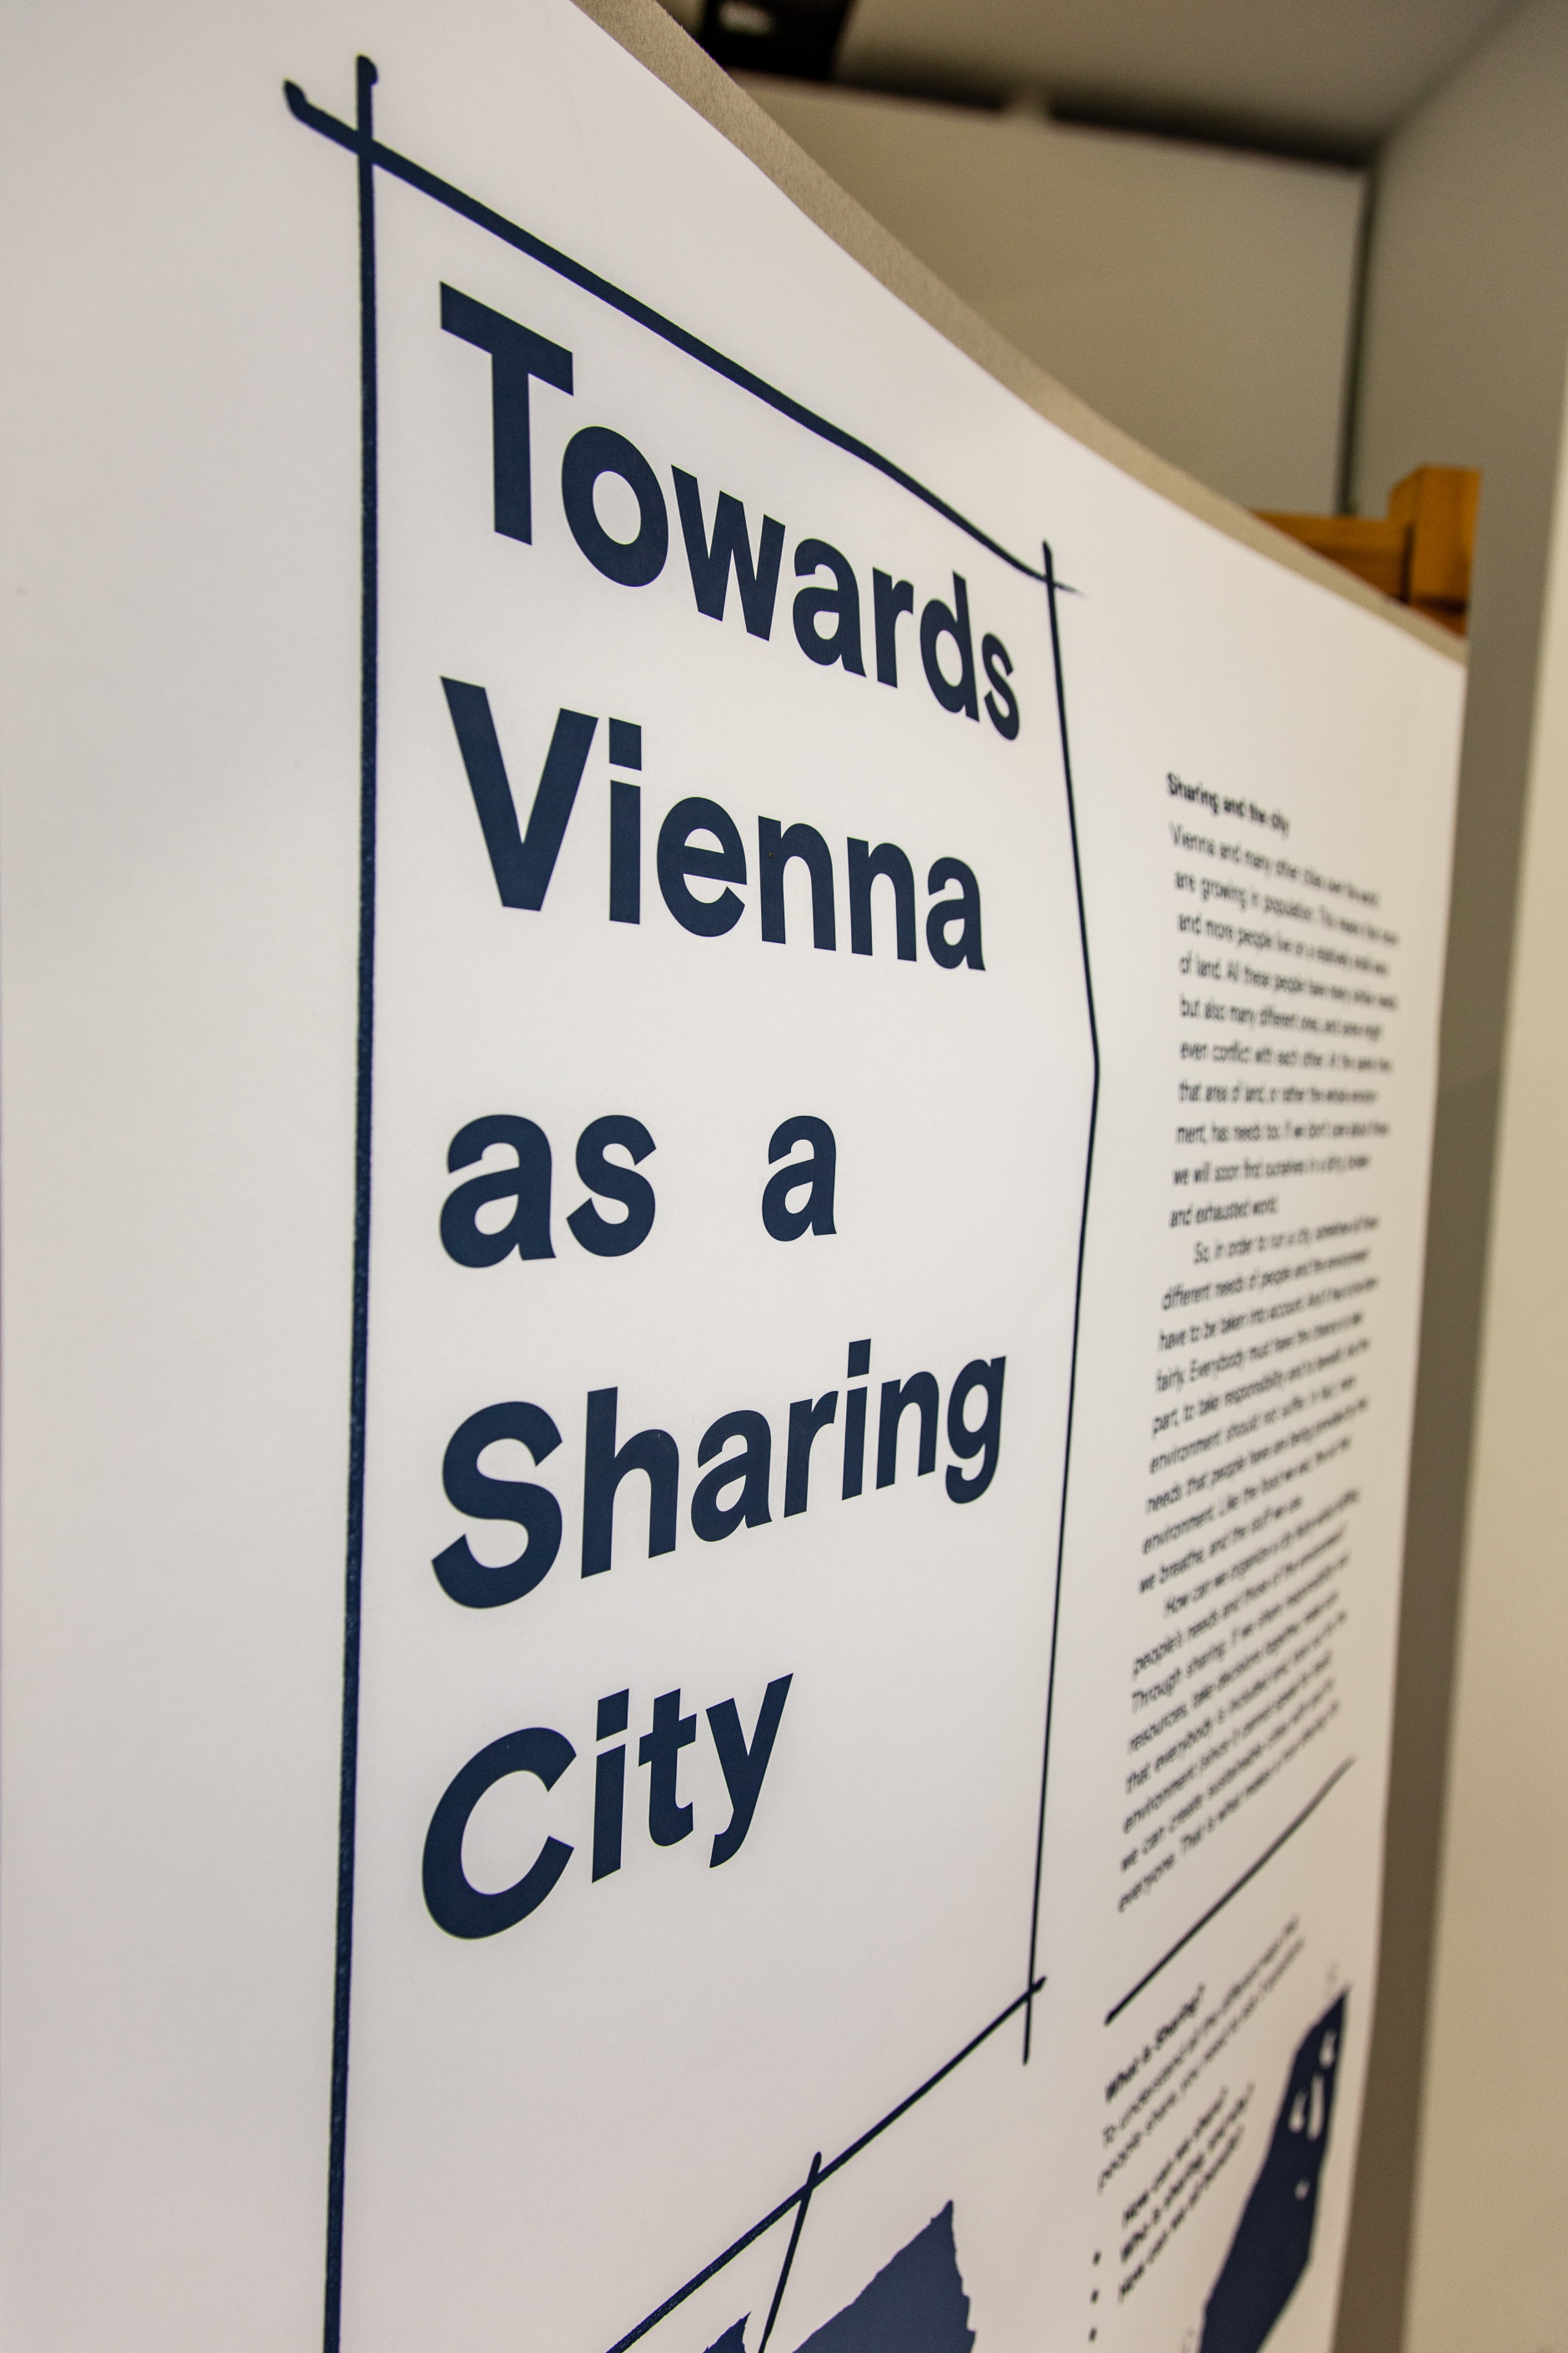 Towards Vienna as a Sharing City